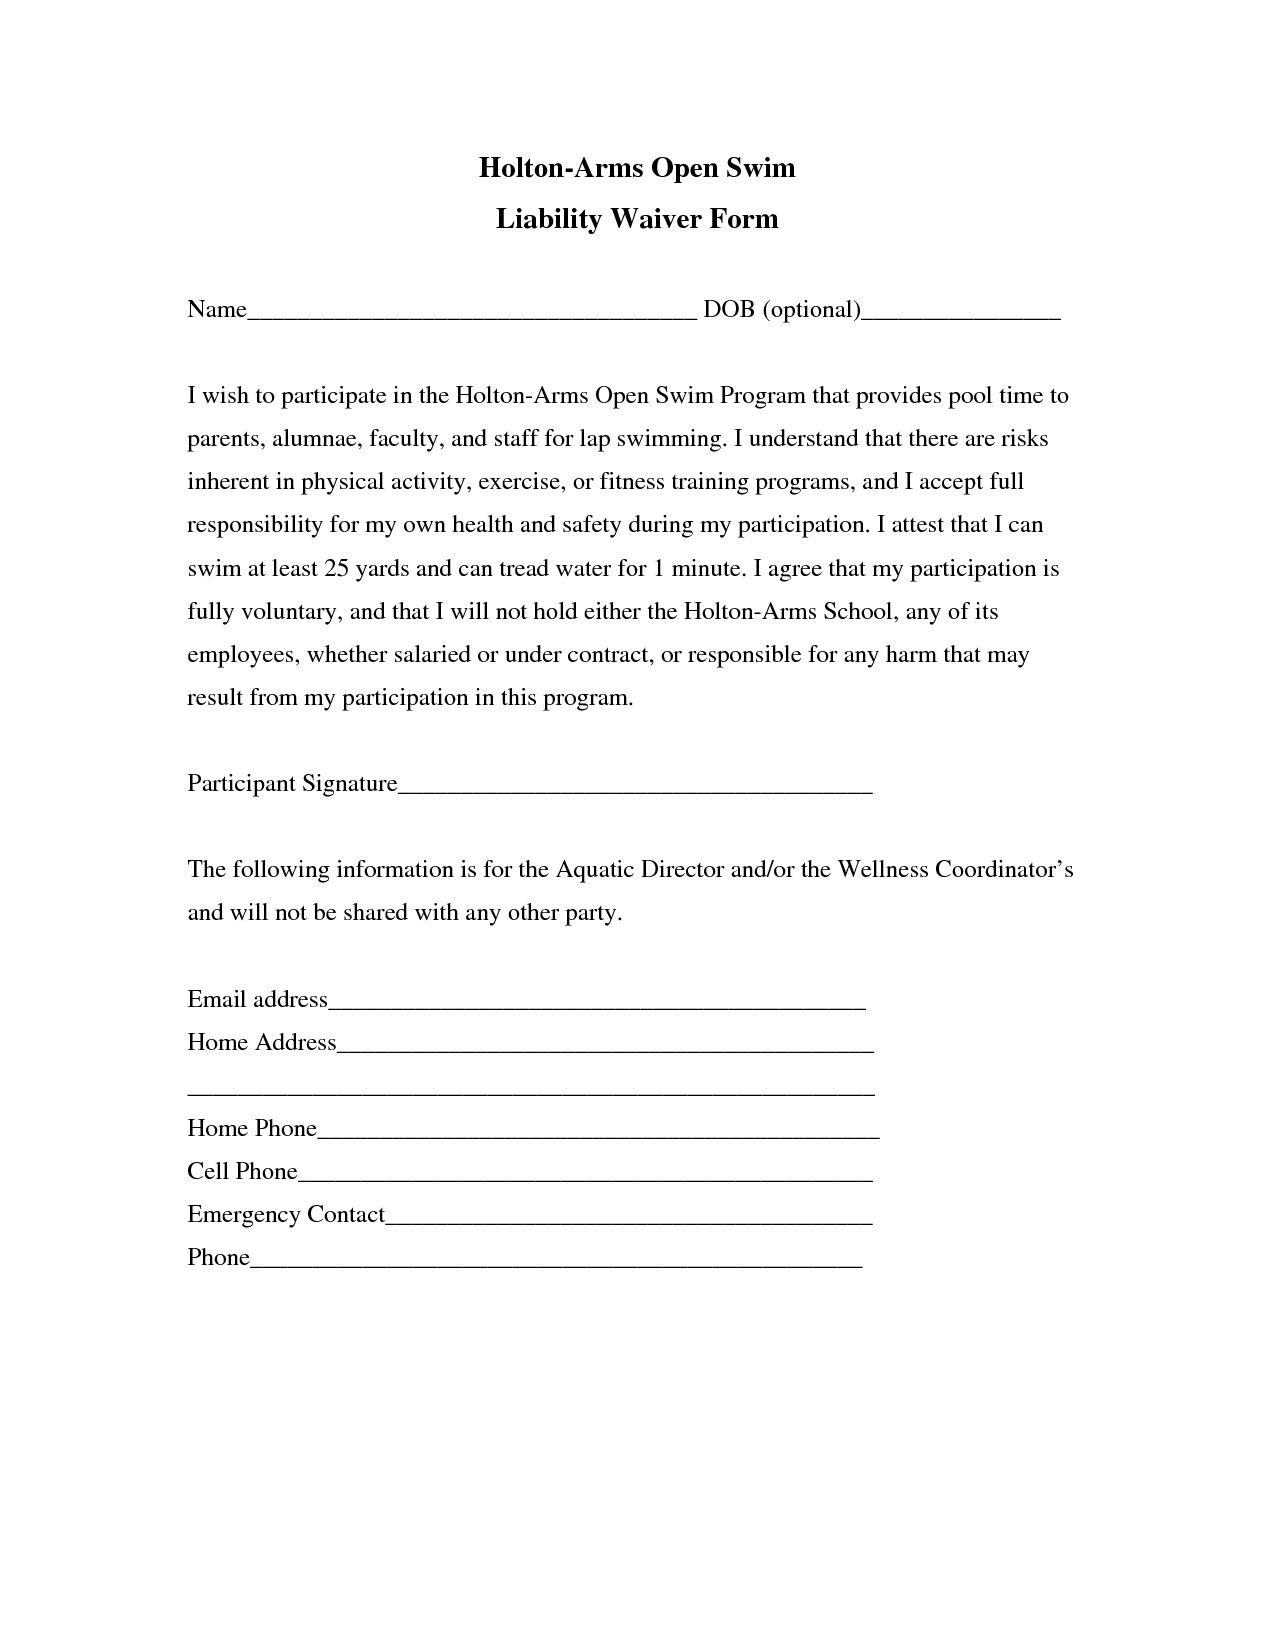 General Liability Waiver Form Template Lovely Liability Insurance Liability Insurance Waiver Template In 2020